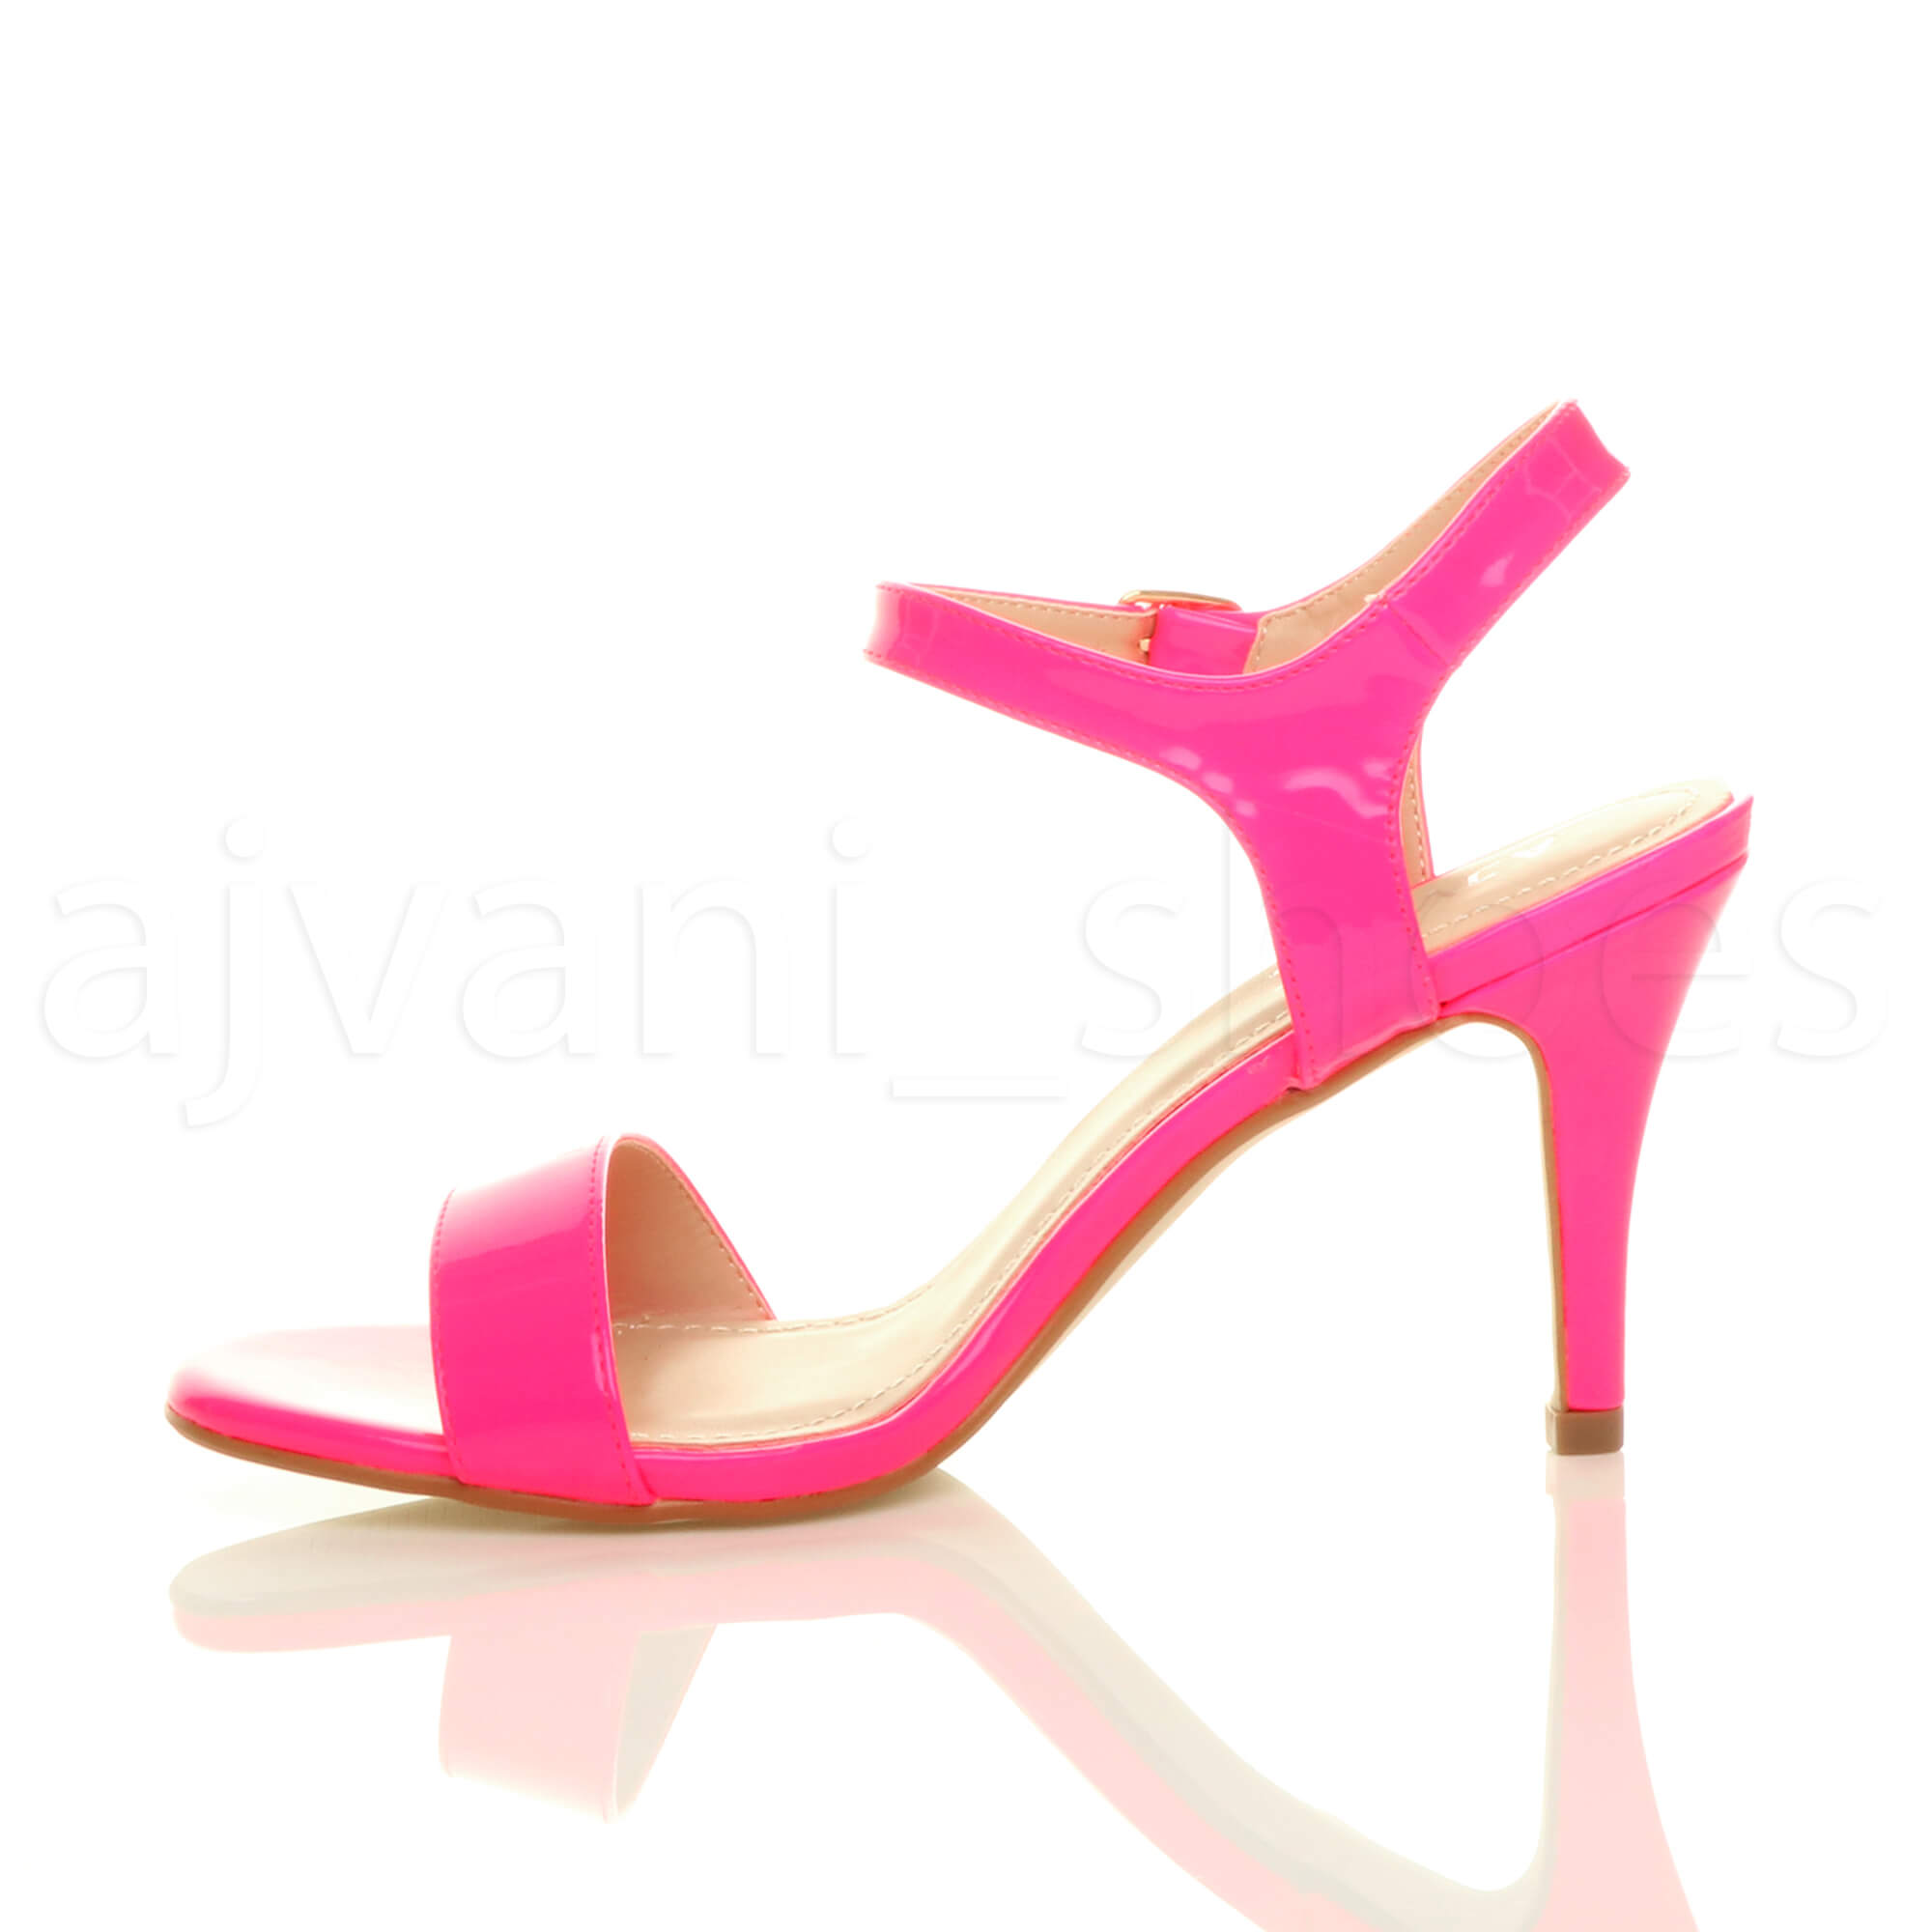 WOMENS-LADIES-HIGH-HEEL-BUCKLE-STRAPPY-BASIC-BARELY-THERE-SANDALS-SHOES-SIZE thumbnail 81